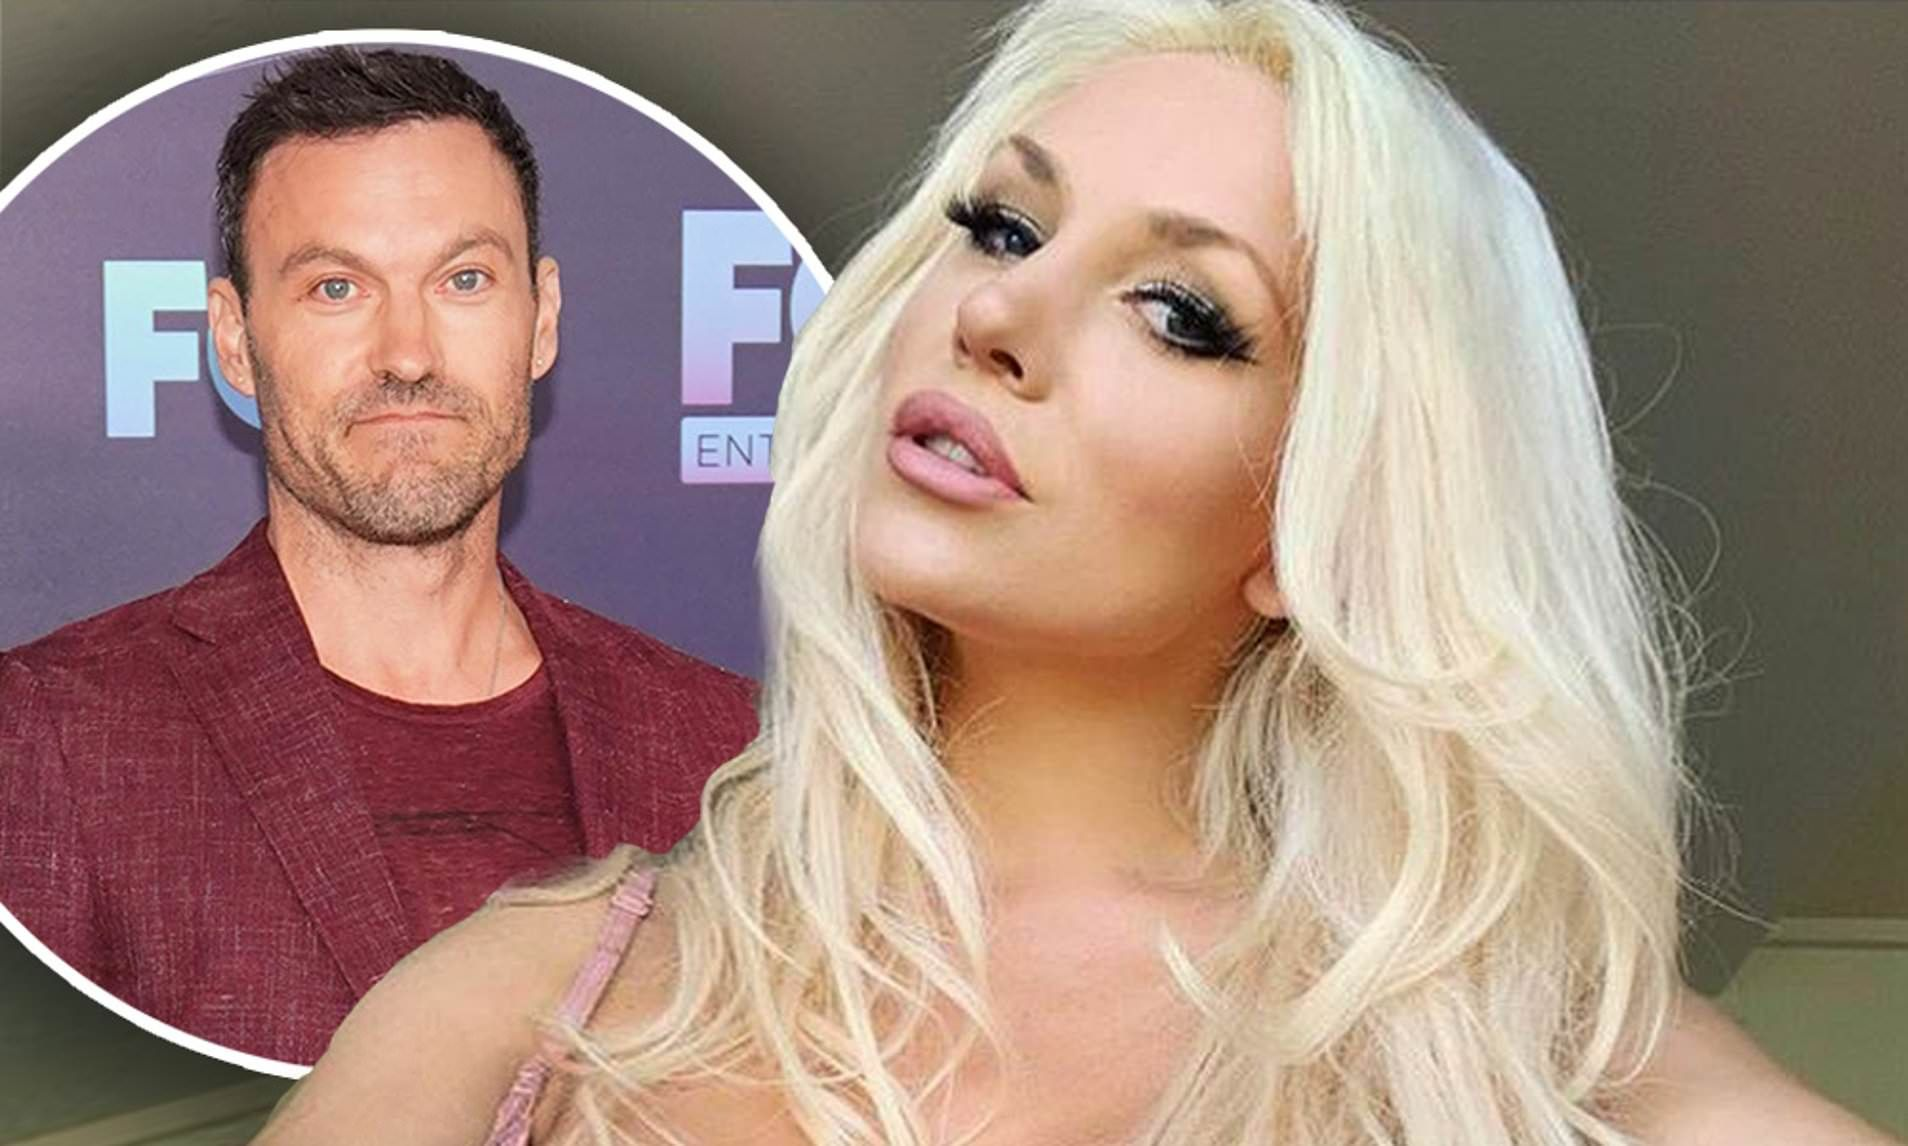 Courtney Stodden Calls Out 'Womanizer' Brian Austin Green - Says He Wanted Her To Be His 'Little Secret' #BrianAustinGreen, #CourtneyStodden celebrityinsider.org #Entertainment #celebrityinsider #celebritynews #celebrities #celebrity